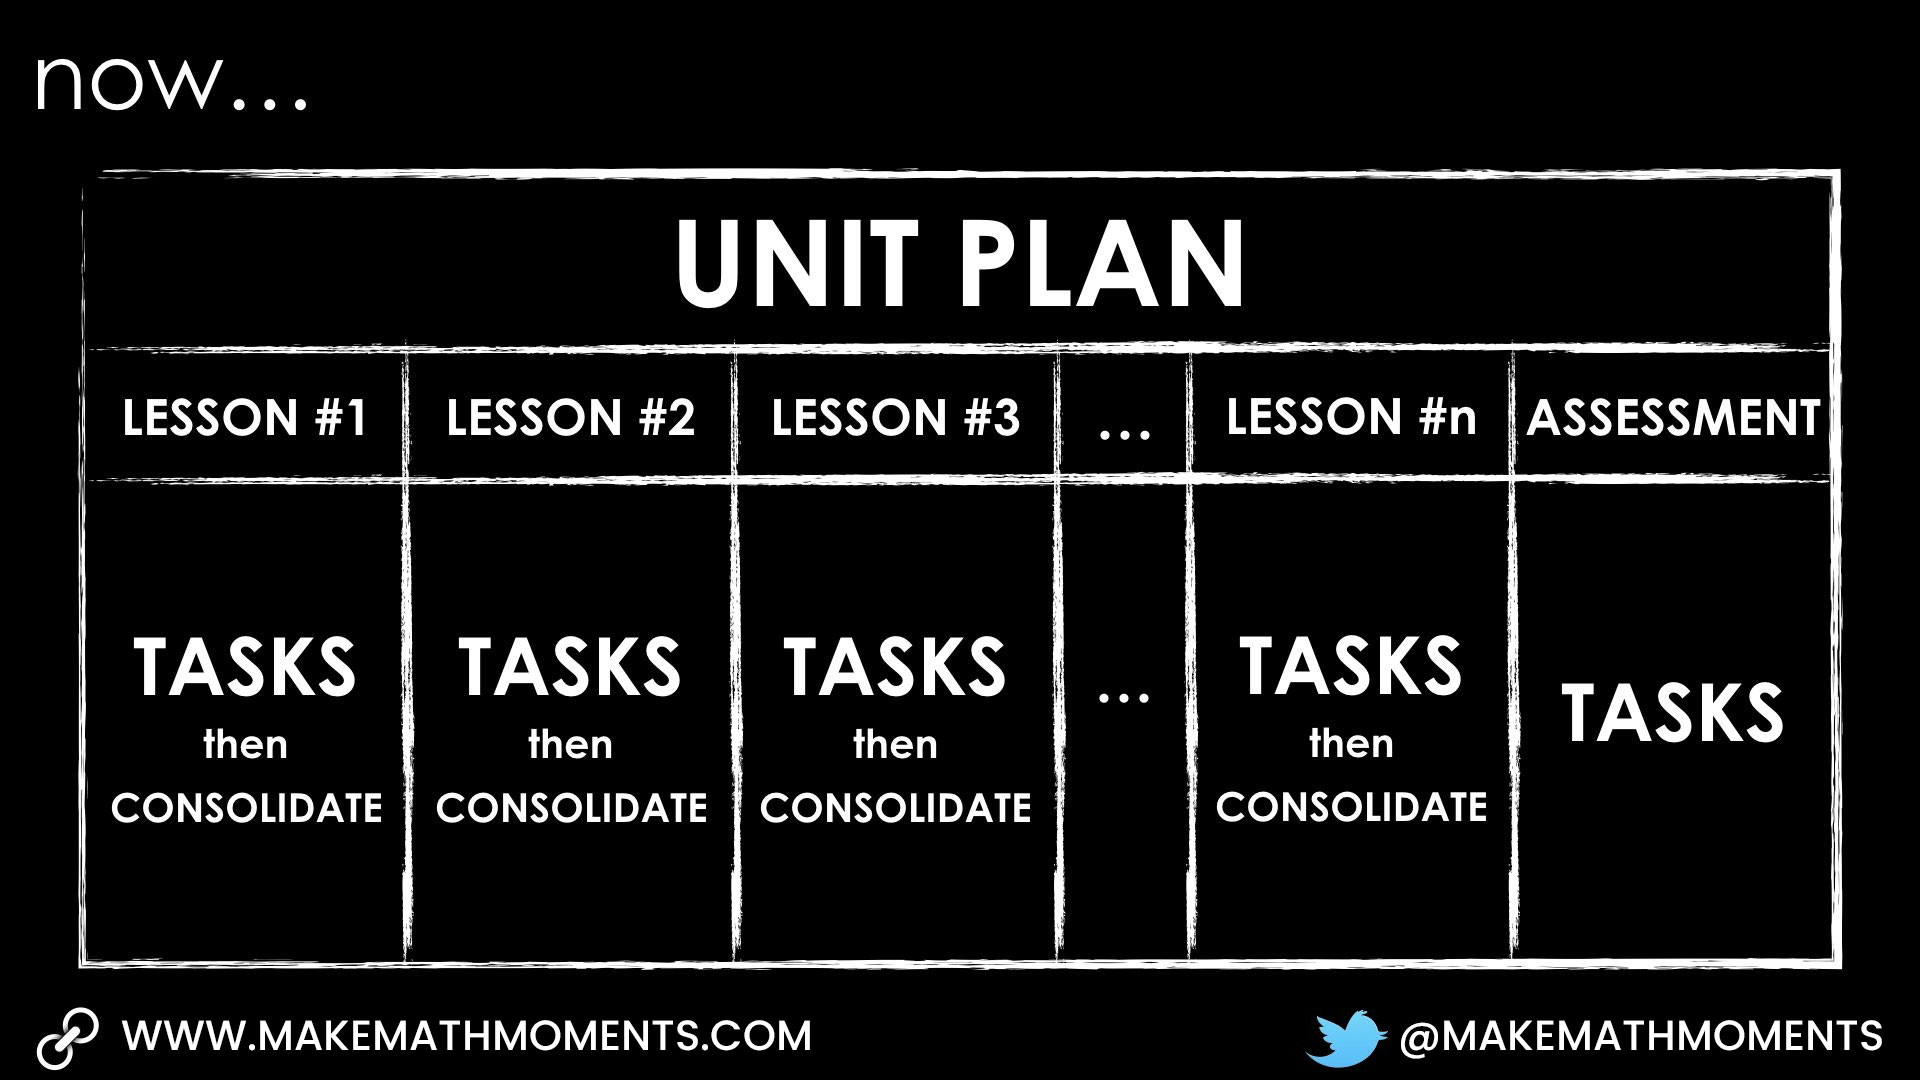 Using Tasks to Teach Lessons - Unit Plan Now